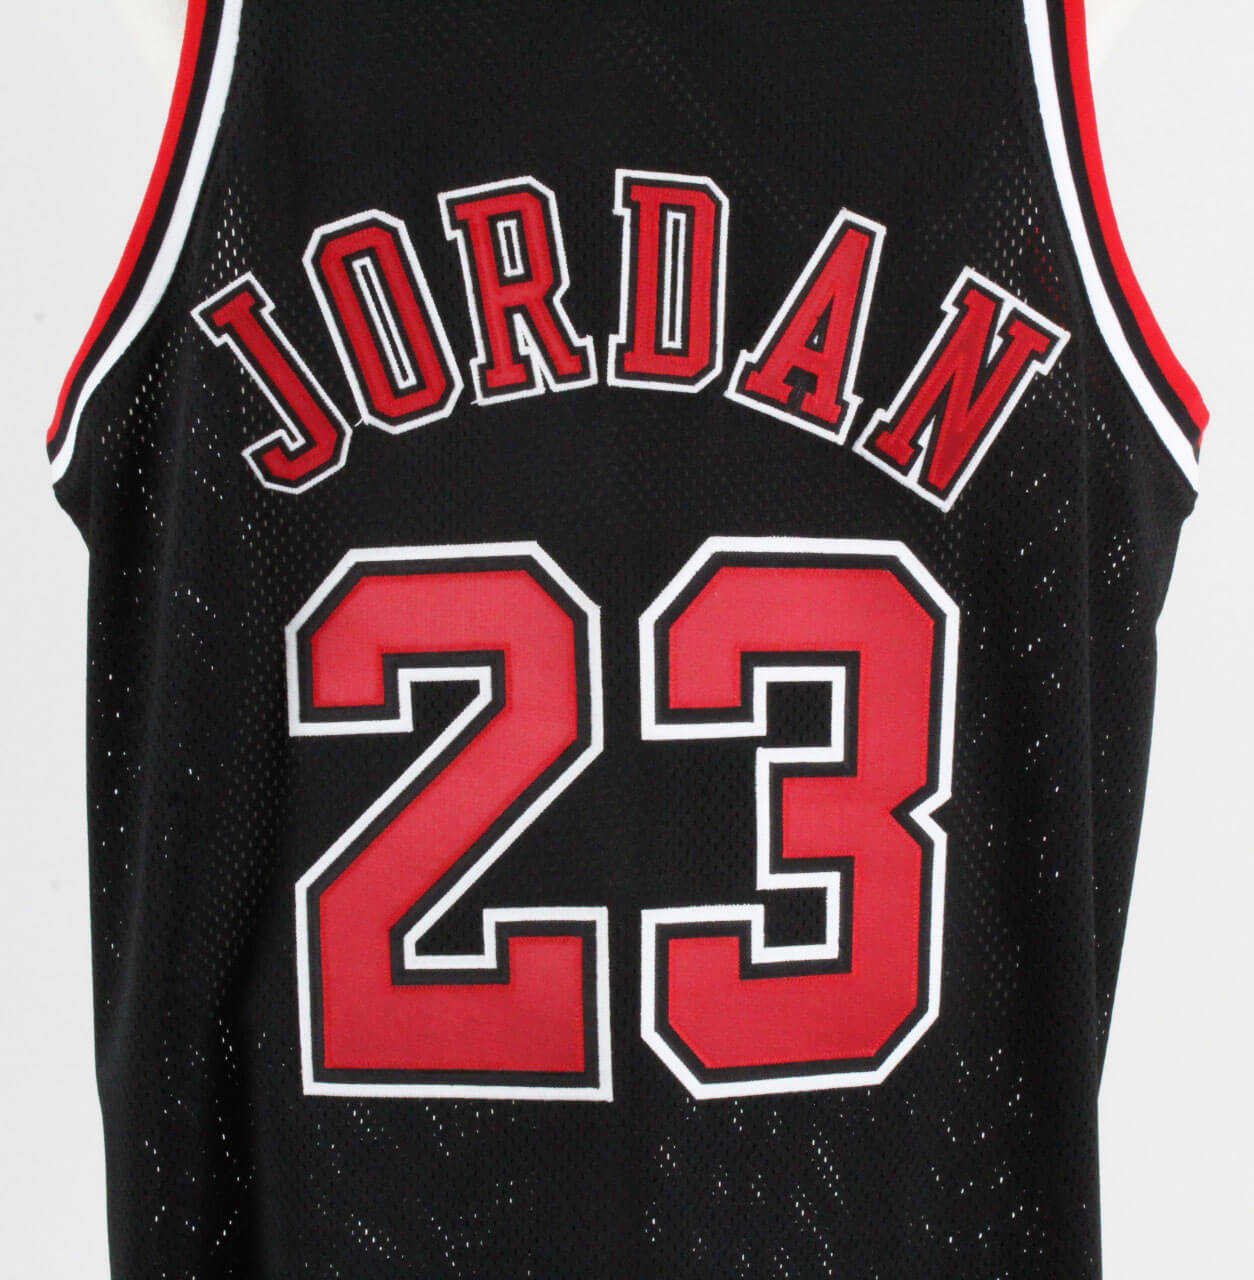 a1bfd7c0b98 1997-98 Michael Jordan Game Ready Jersey Alternate Chicago Bulls |  Memorabilia Expert